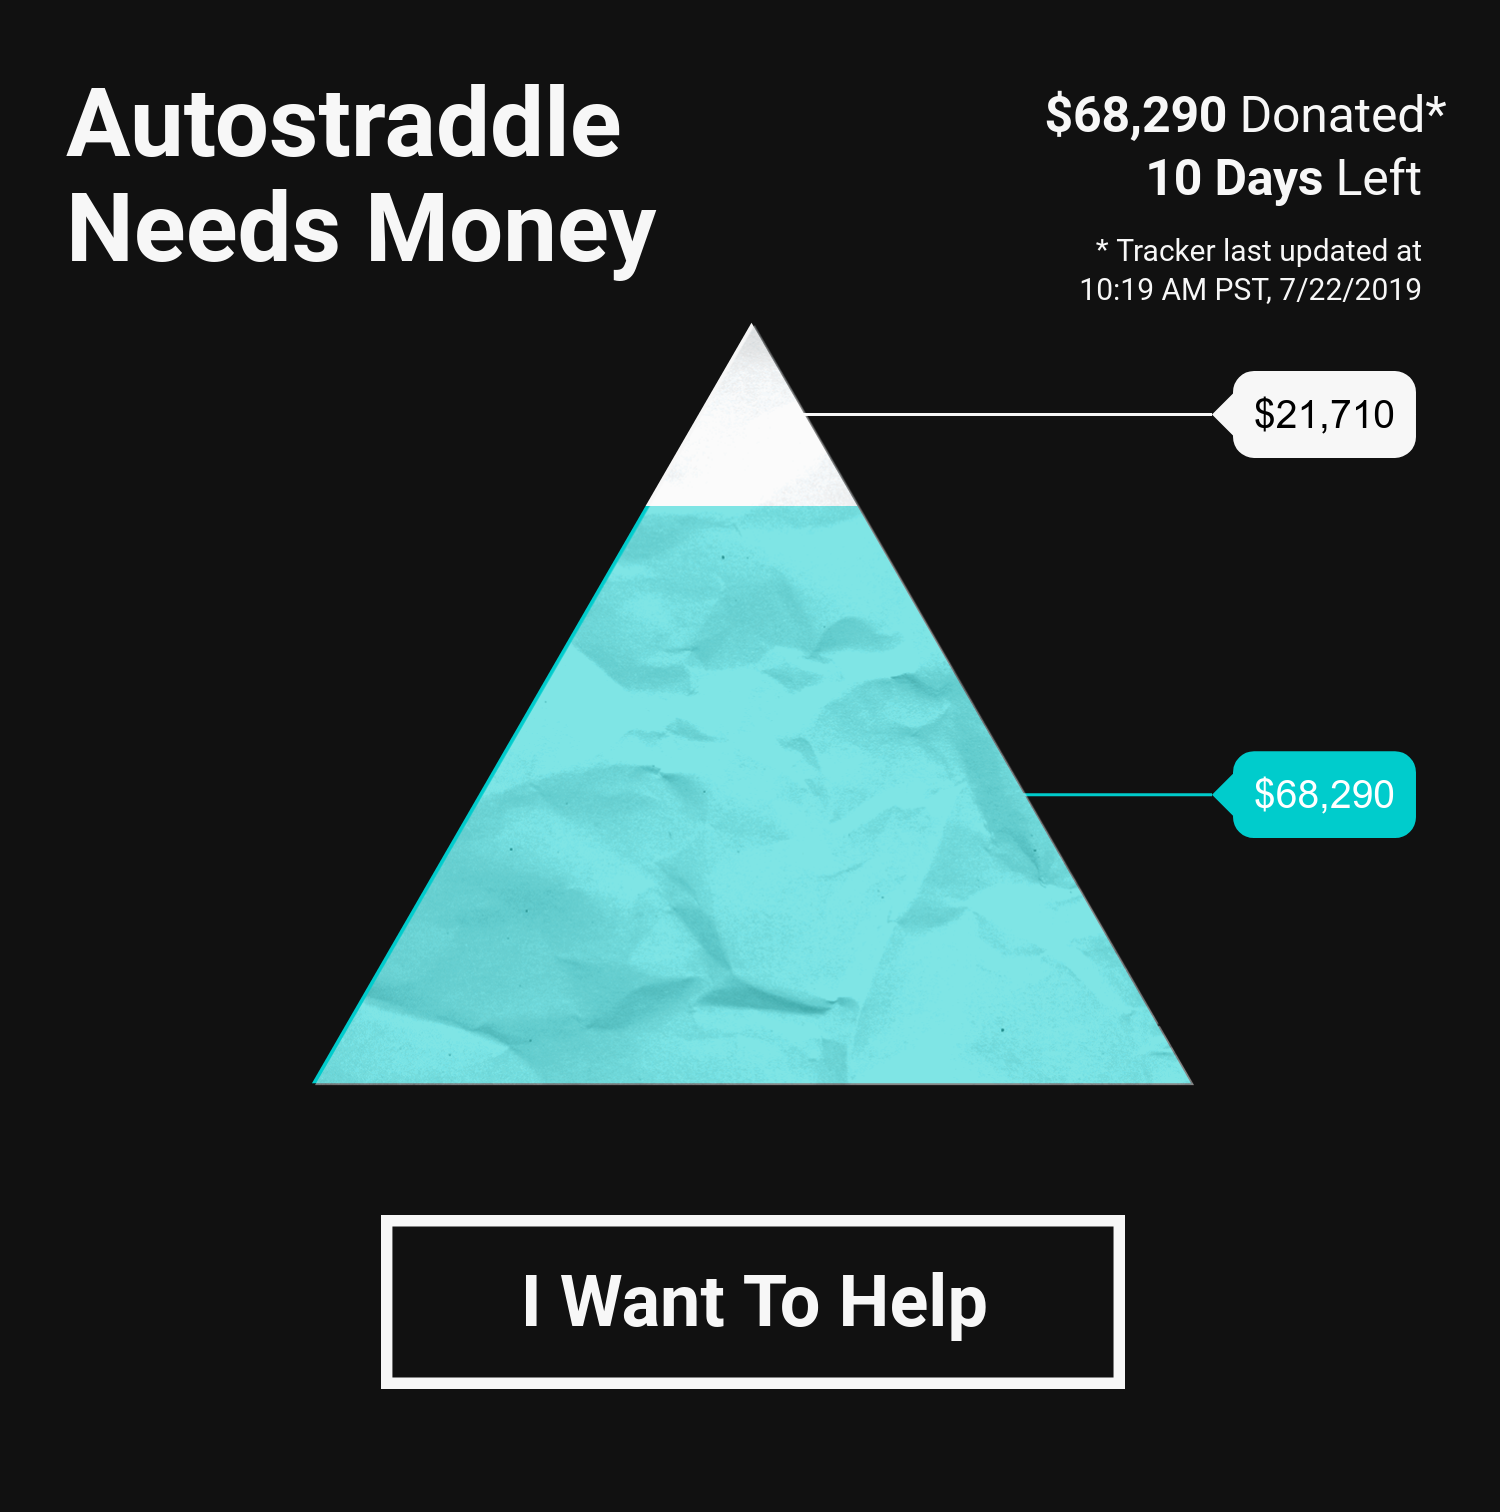 Autostraddle Needs Money / [visual] Fundraising Tracker / $68,290 Donated / Last Updated: 7.22 at 10:19 am PST / [button] I Want To Help